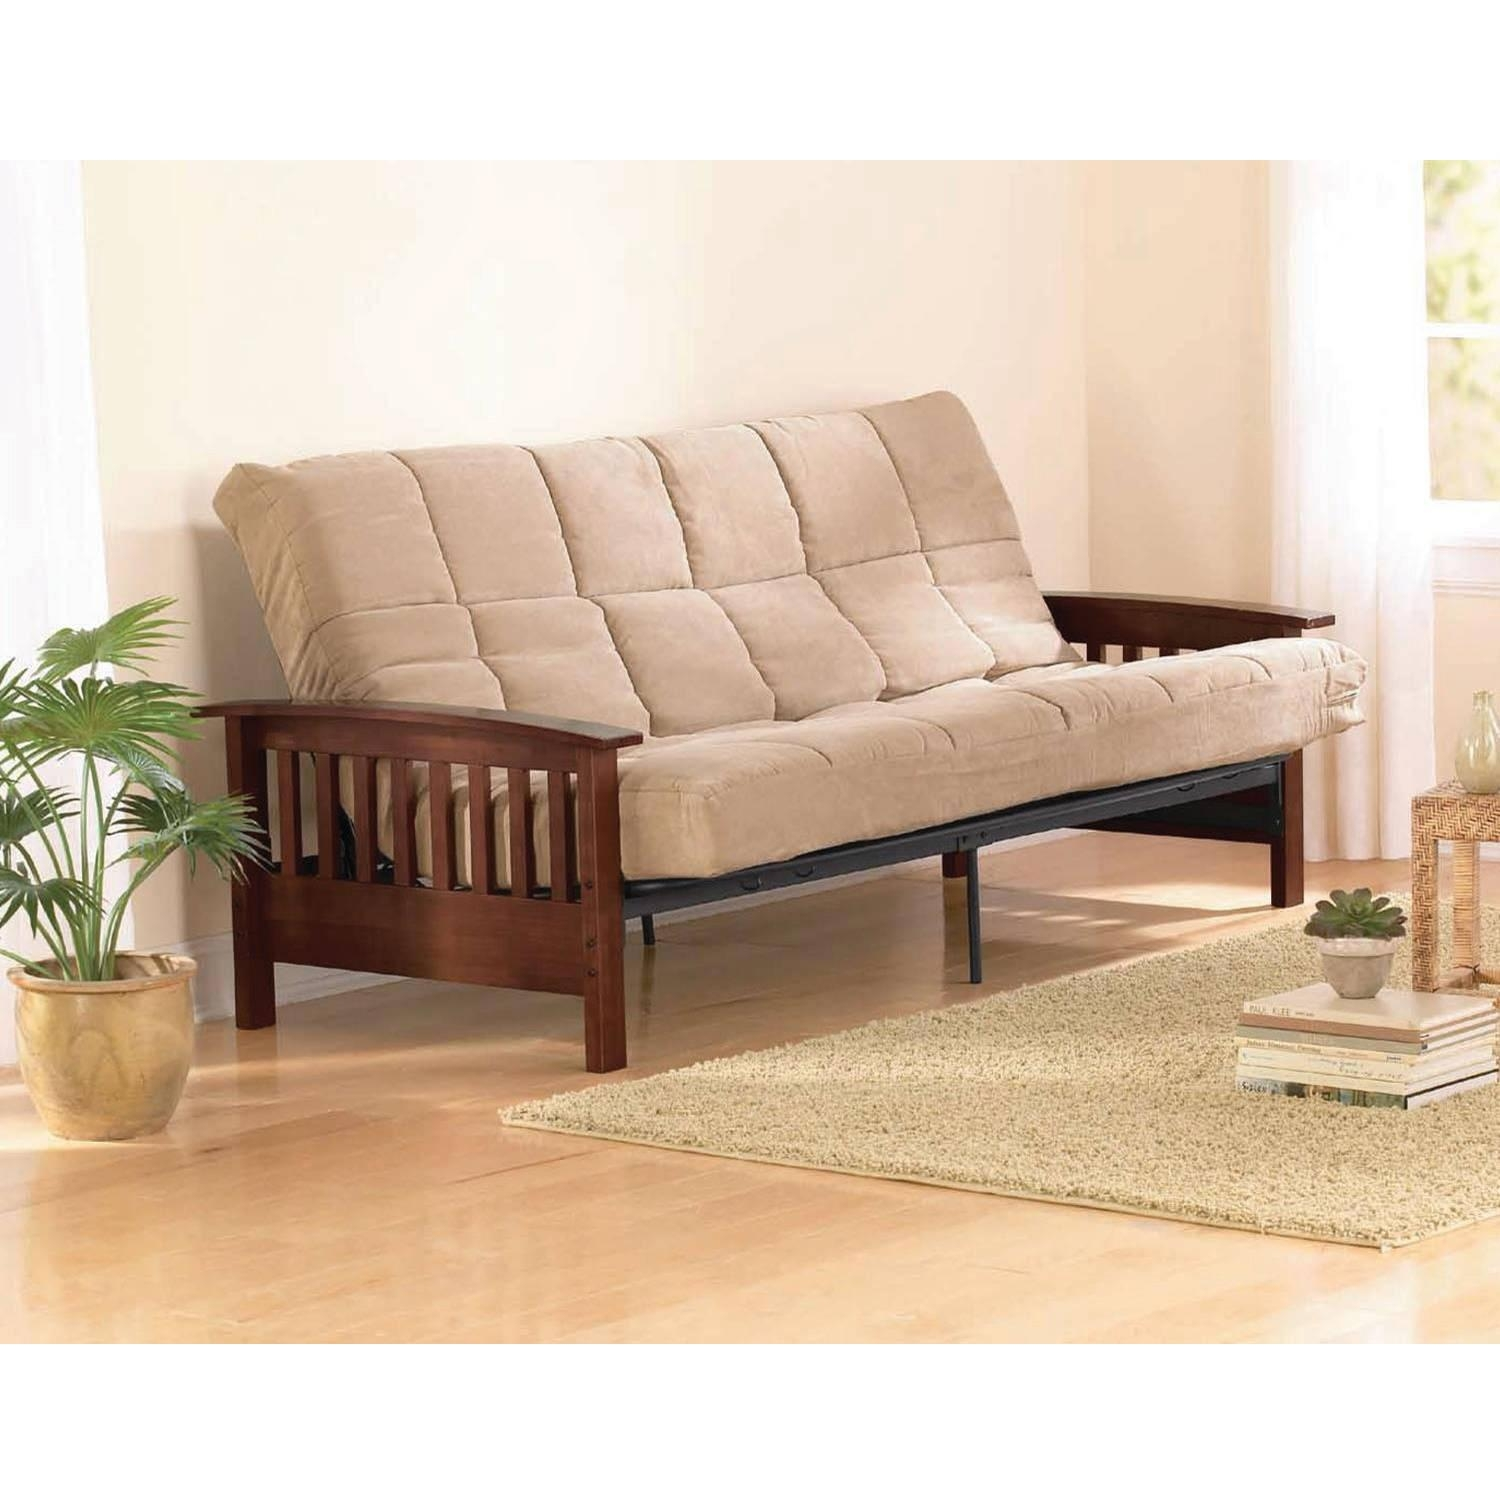 Atherton Home Taylor Convertible Futon Sofa Bed – Walmart With Wallmart Sofa (View 13 of 20)